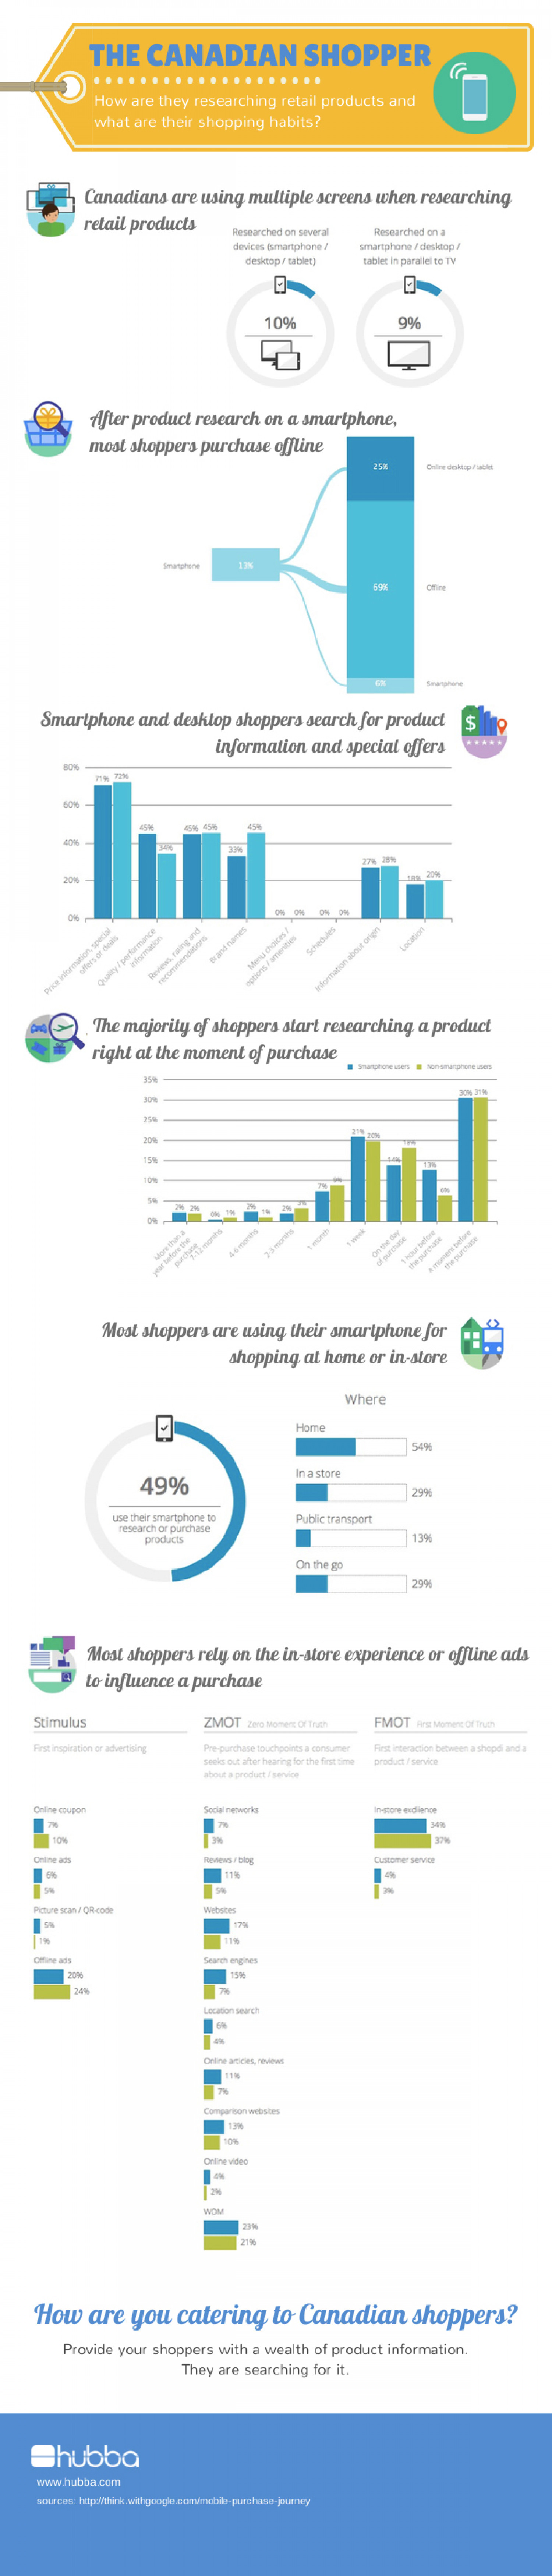 The Canadian Shopper Infographic